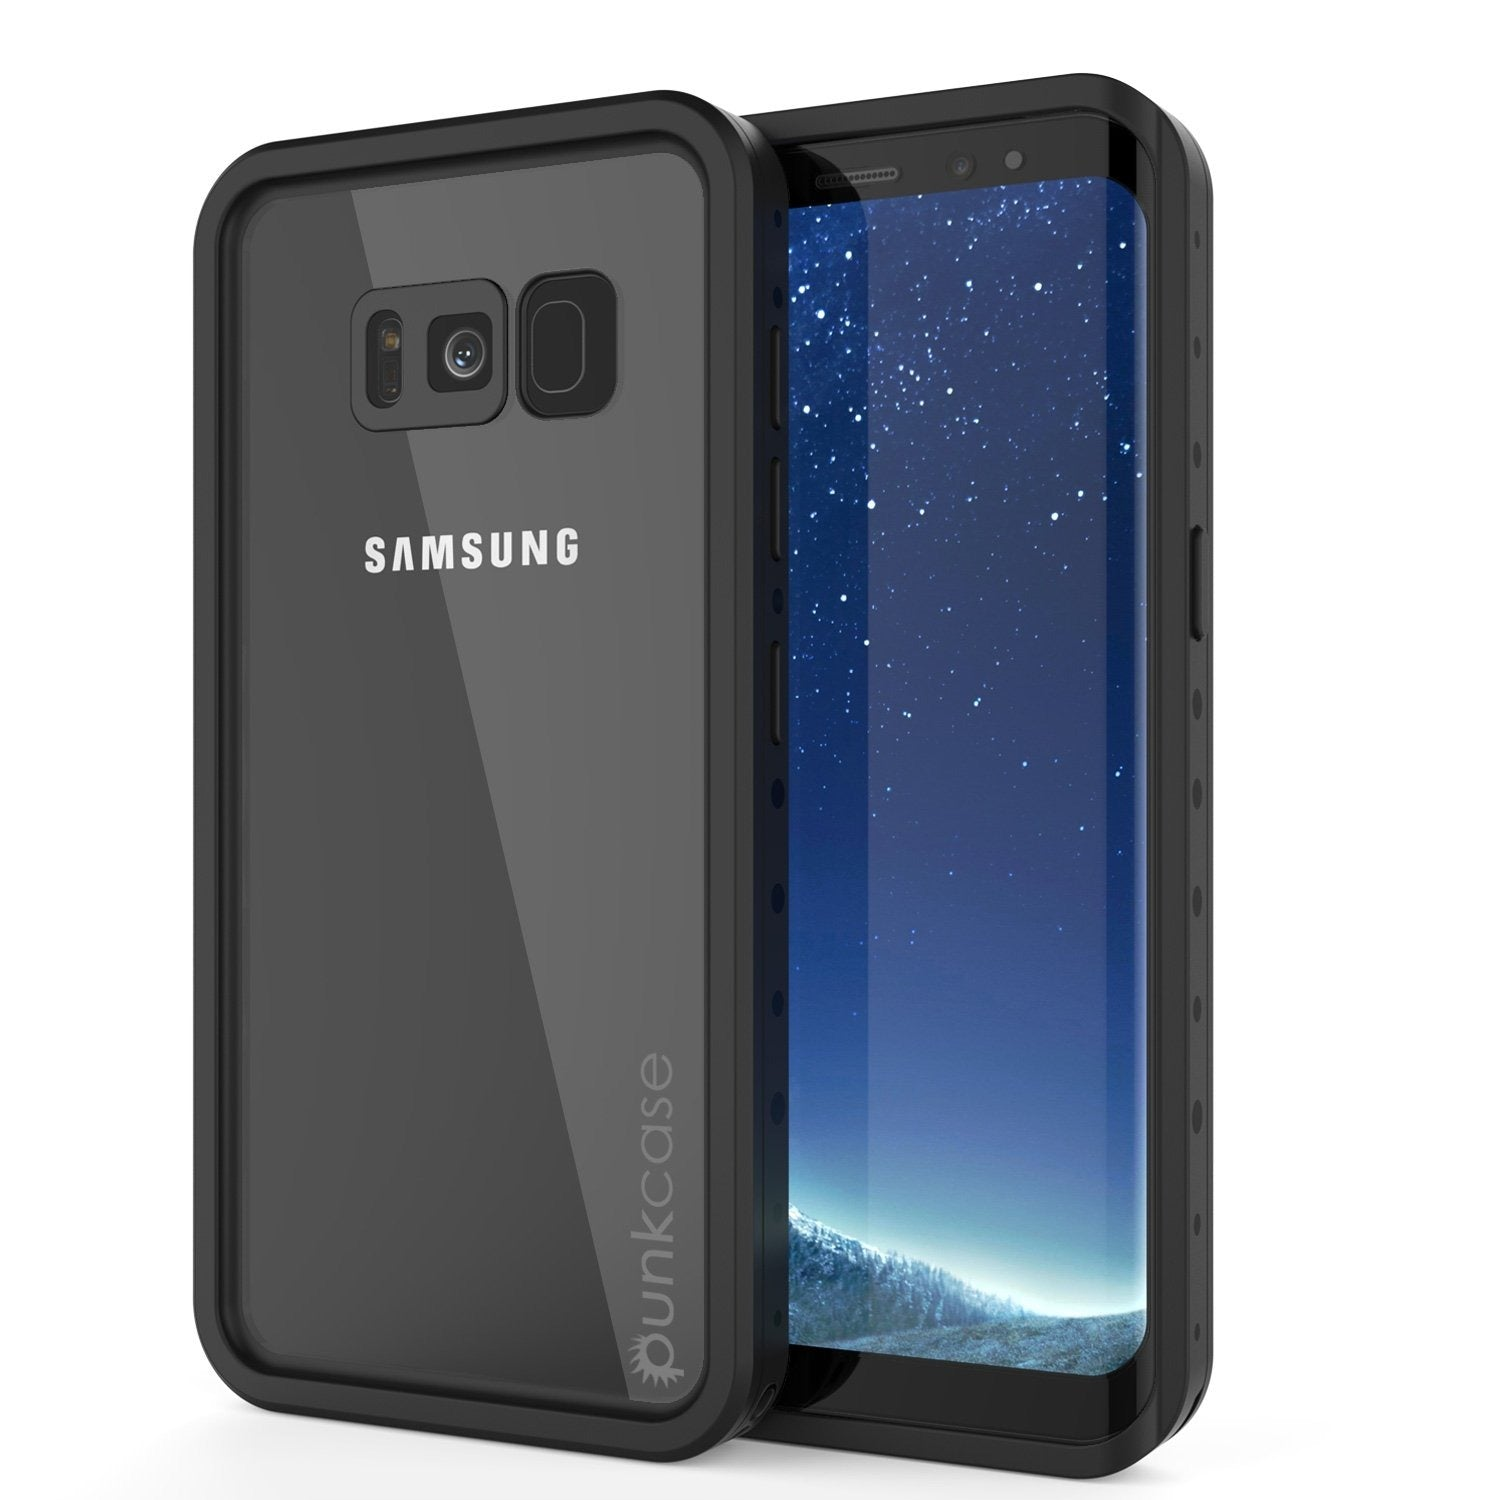 Galaxy S8 Waterproof Case PunkCase StudStar Clear Thin 6.6ft Underwater IP68 Shock/Snow Proof